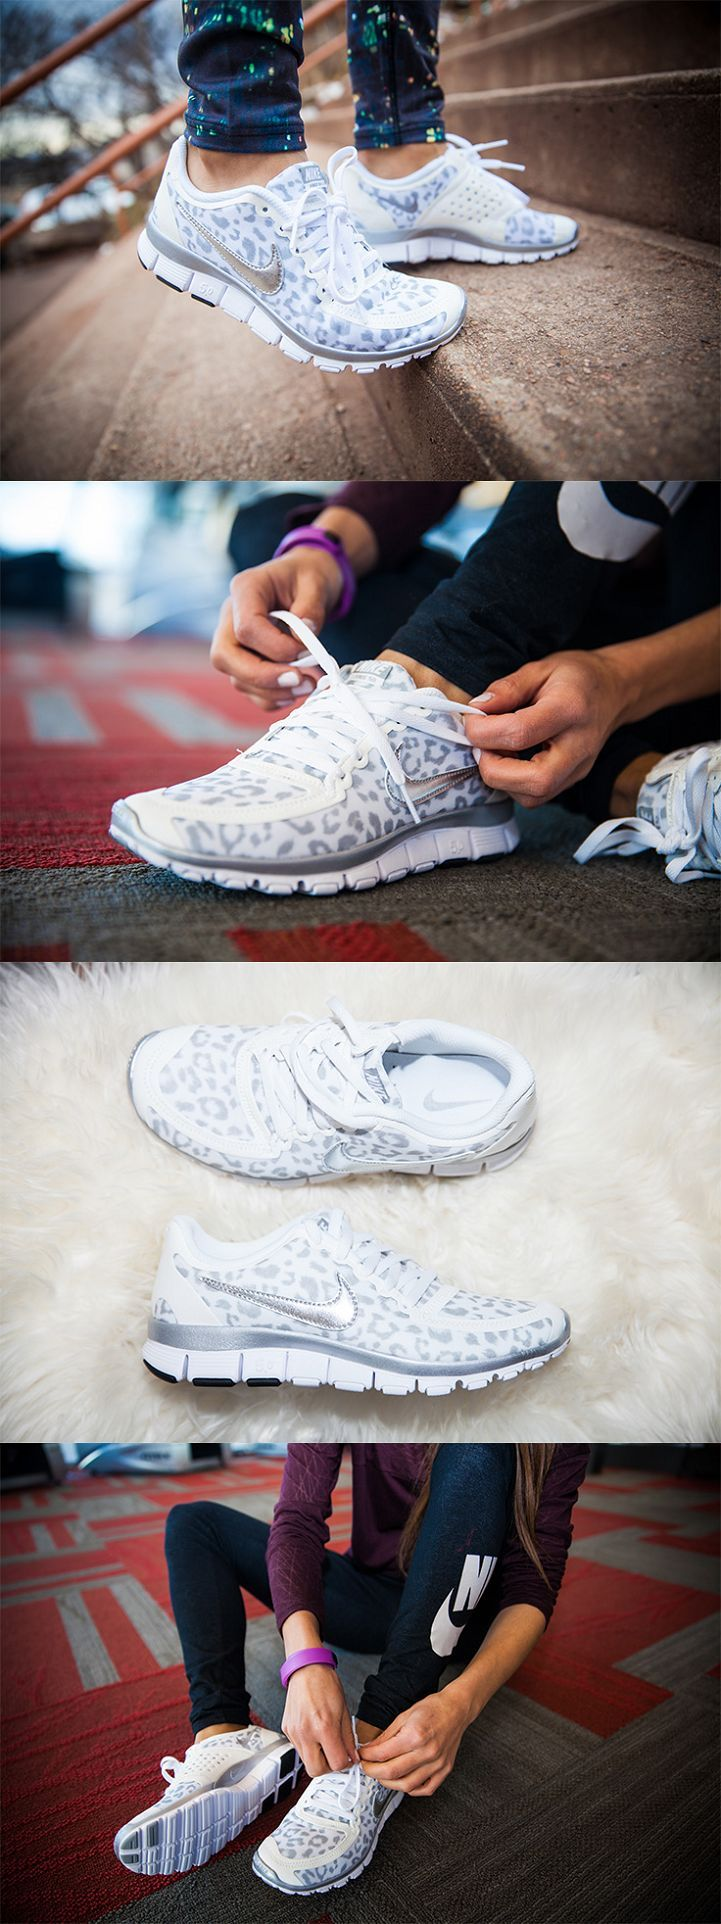 Sooooo Cool!!~~Super website for Men and Women Free Runs only 21 dollars for gift,Press picture link get it immediately!!!